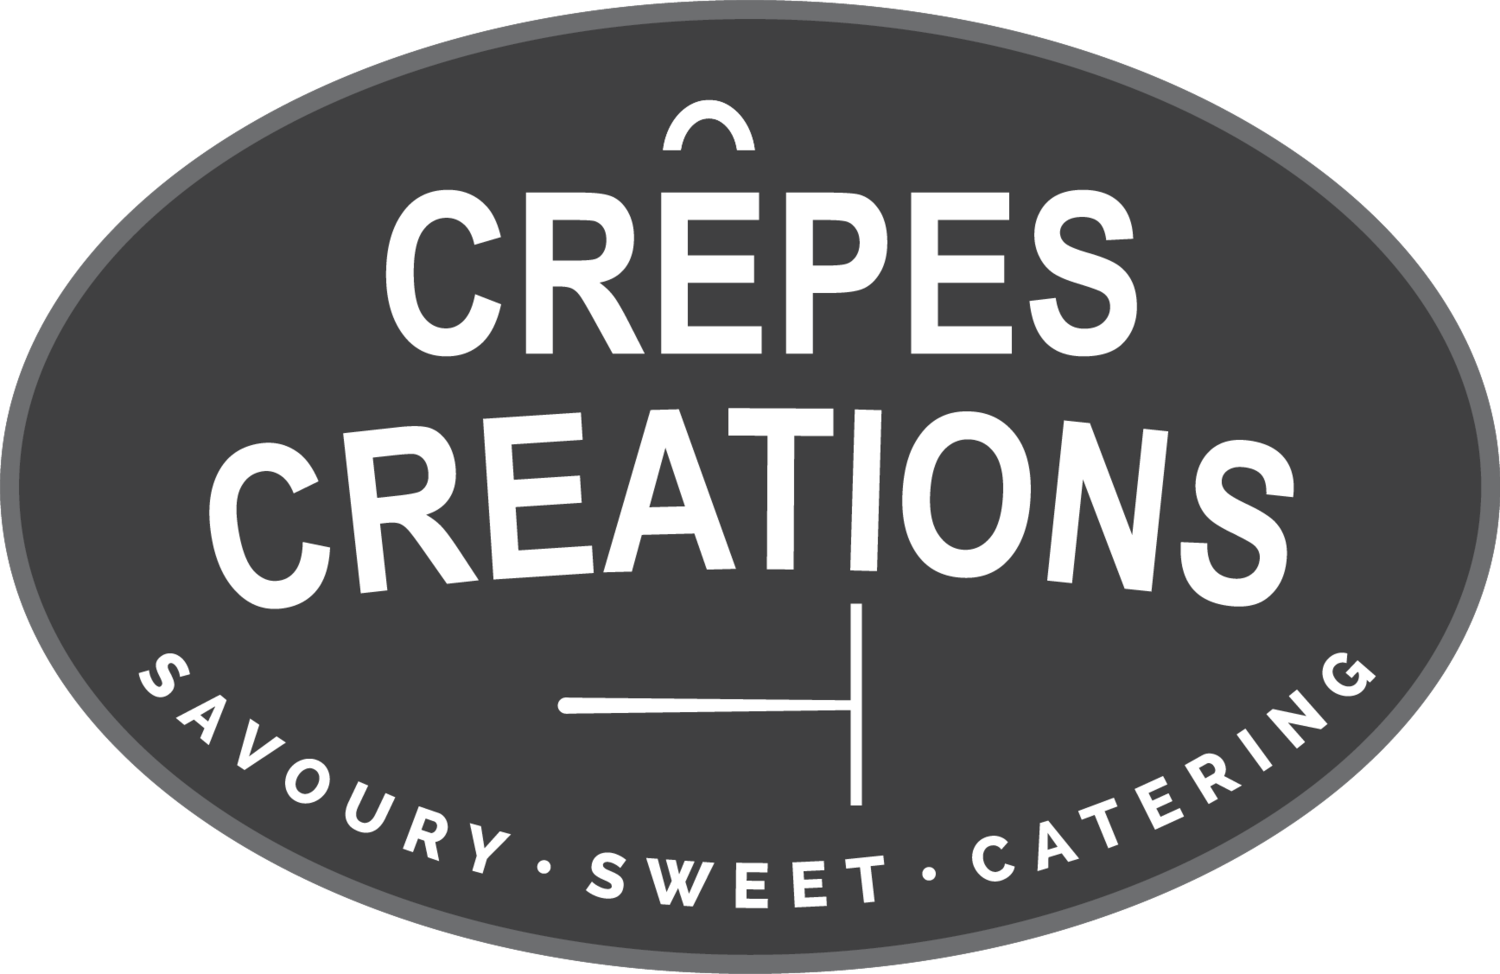 Crepes Creations